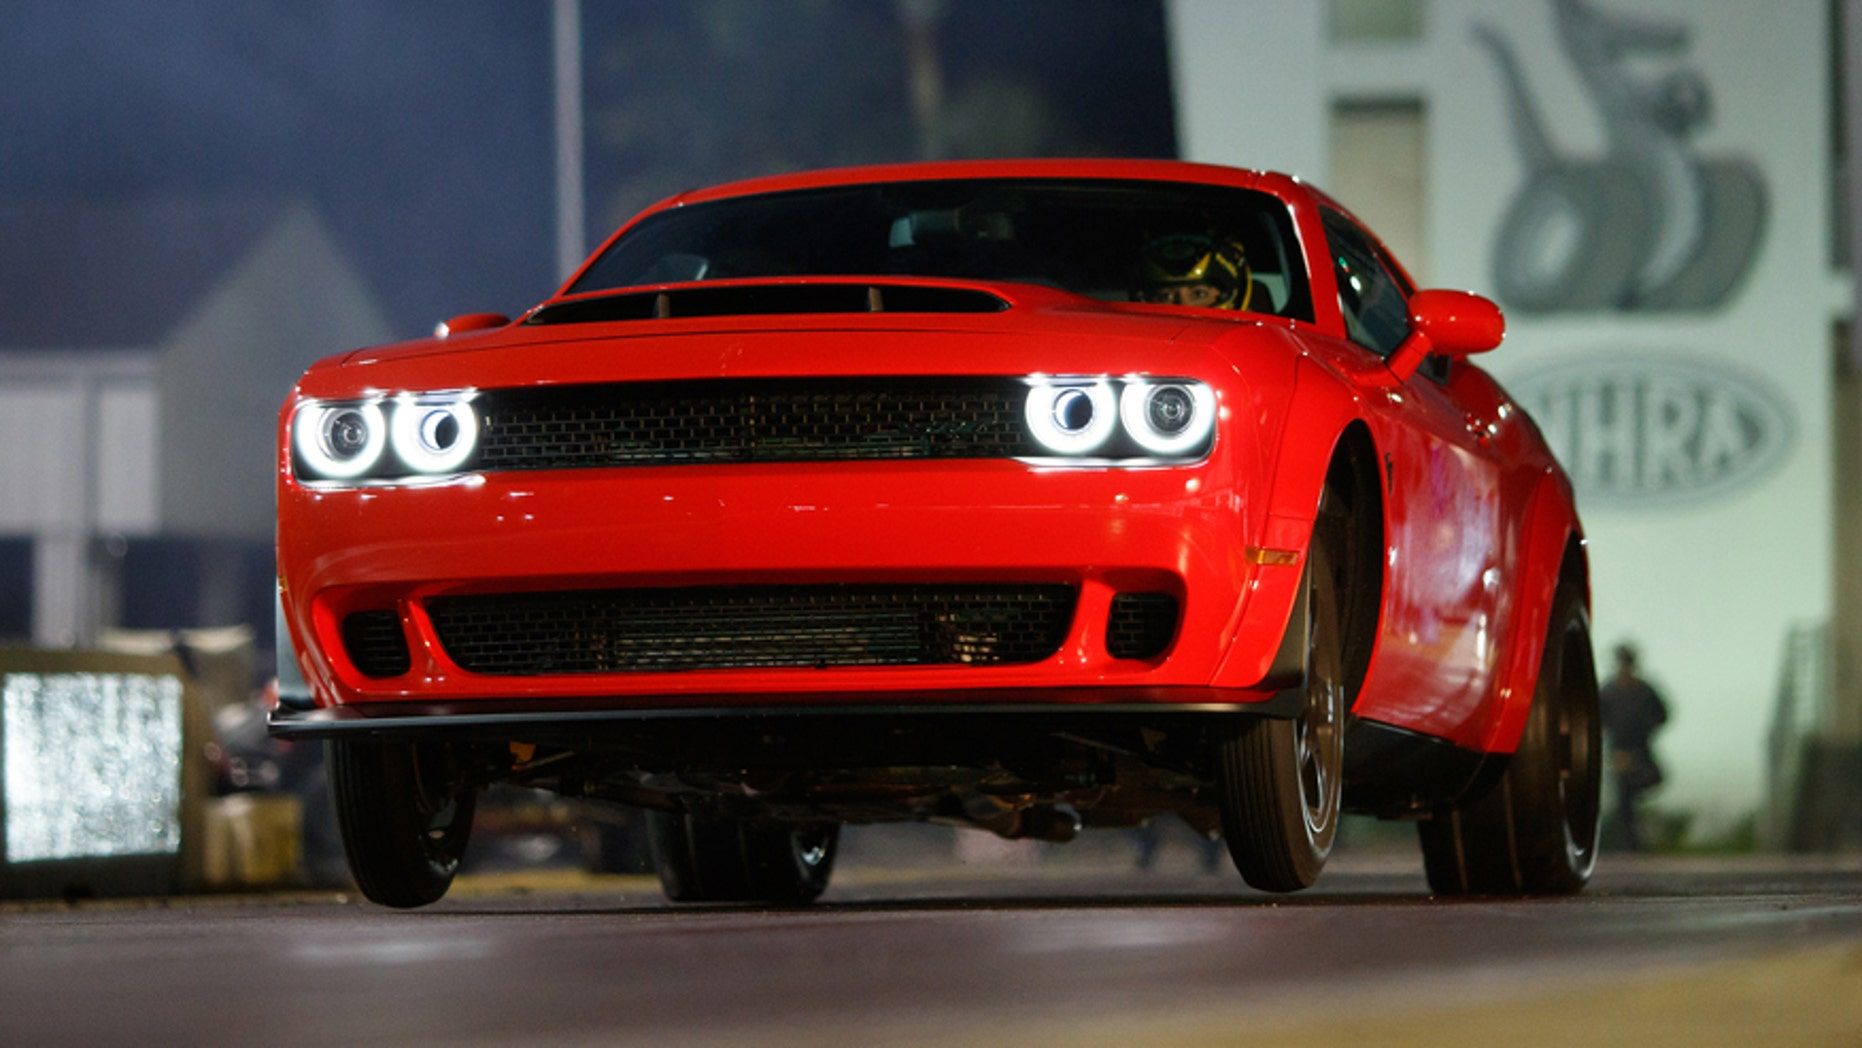 Most Powerful American Cars-2018 Dodge Challenger SRT Demon